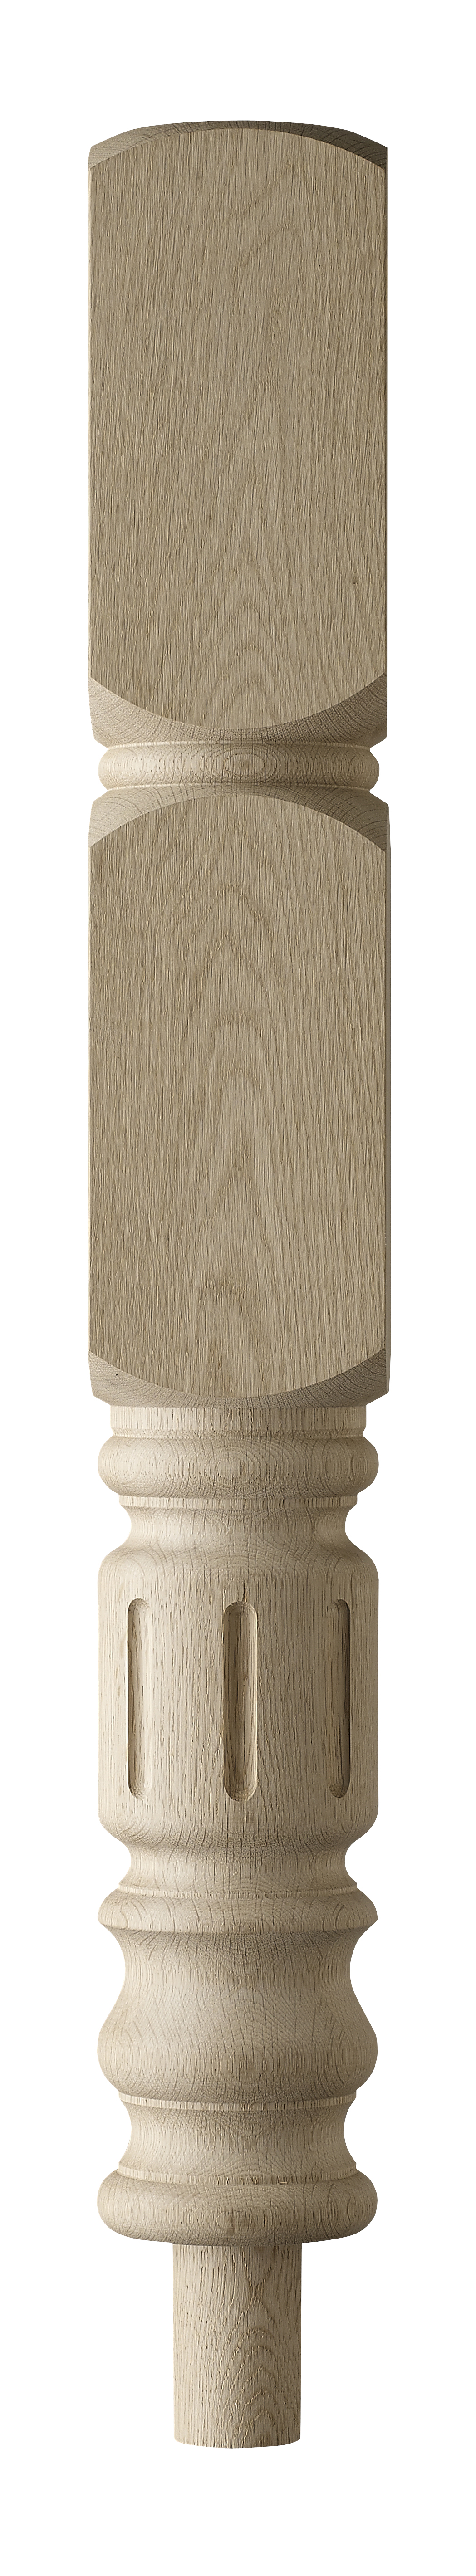 1 Oak Granby Intermediate Newel